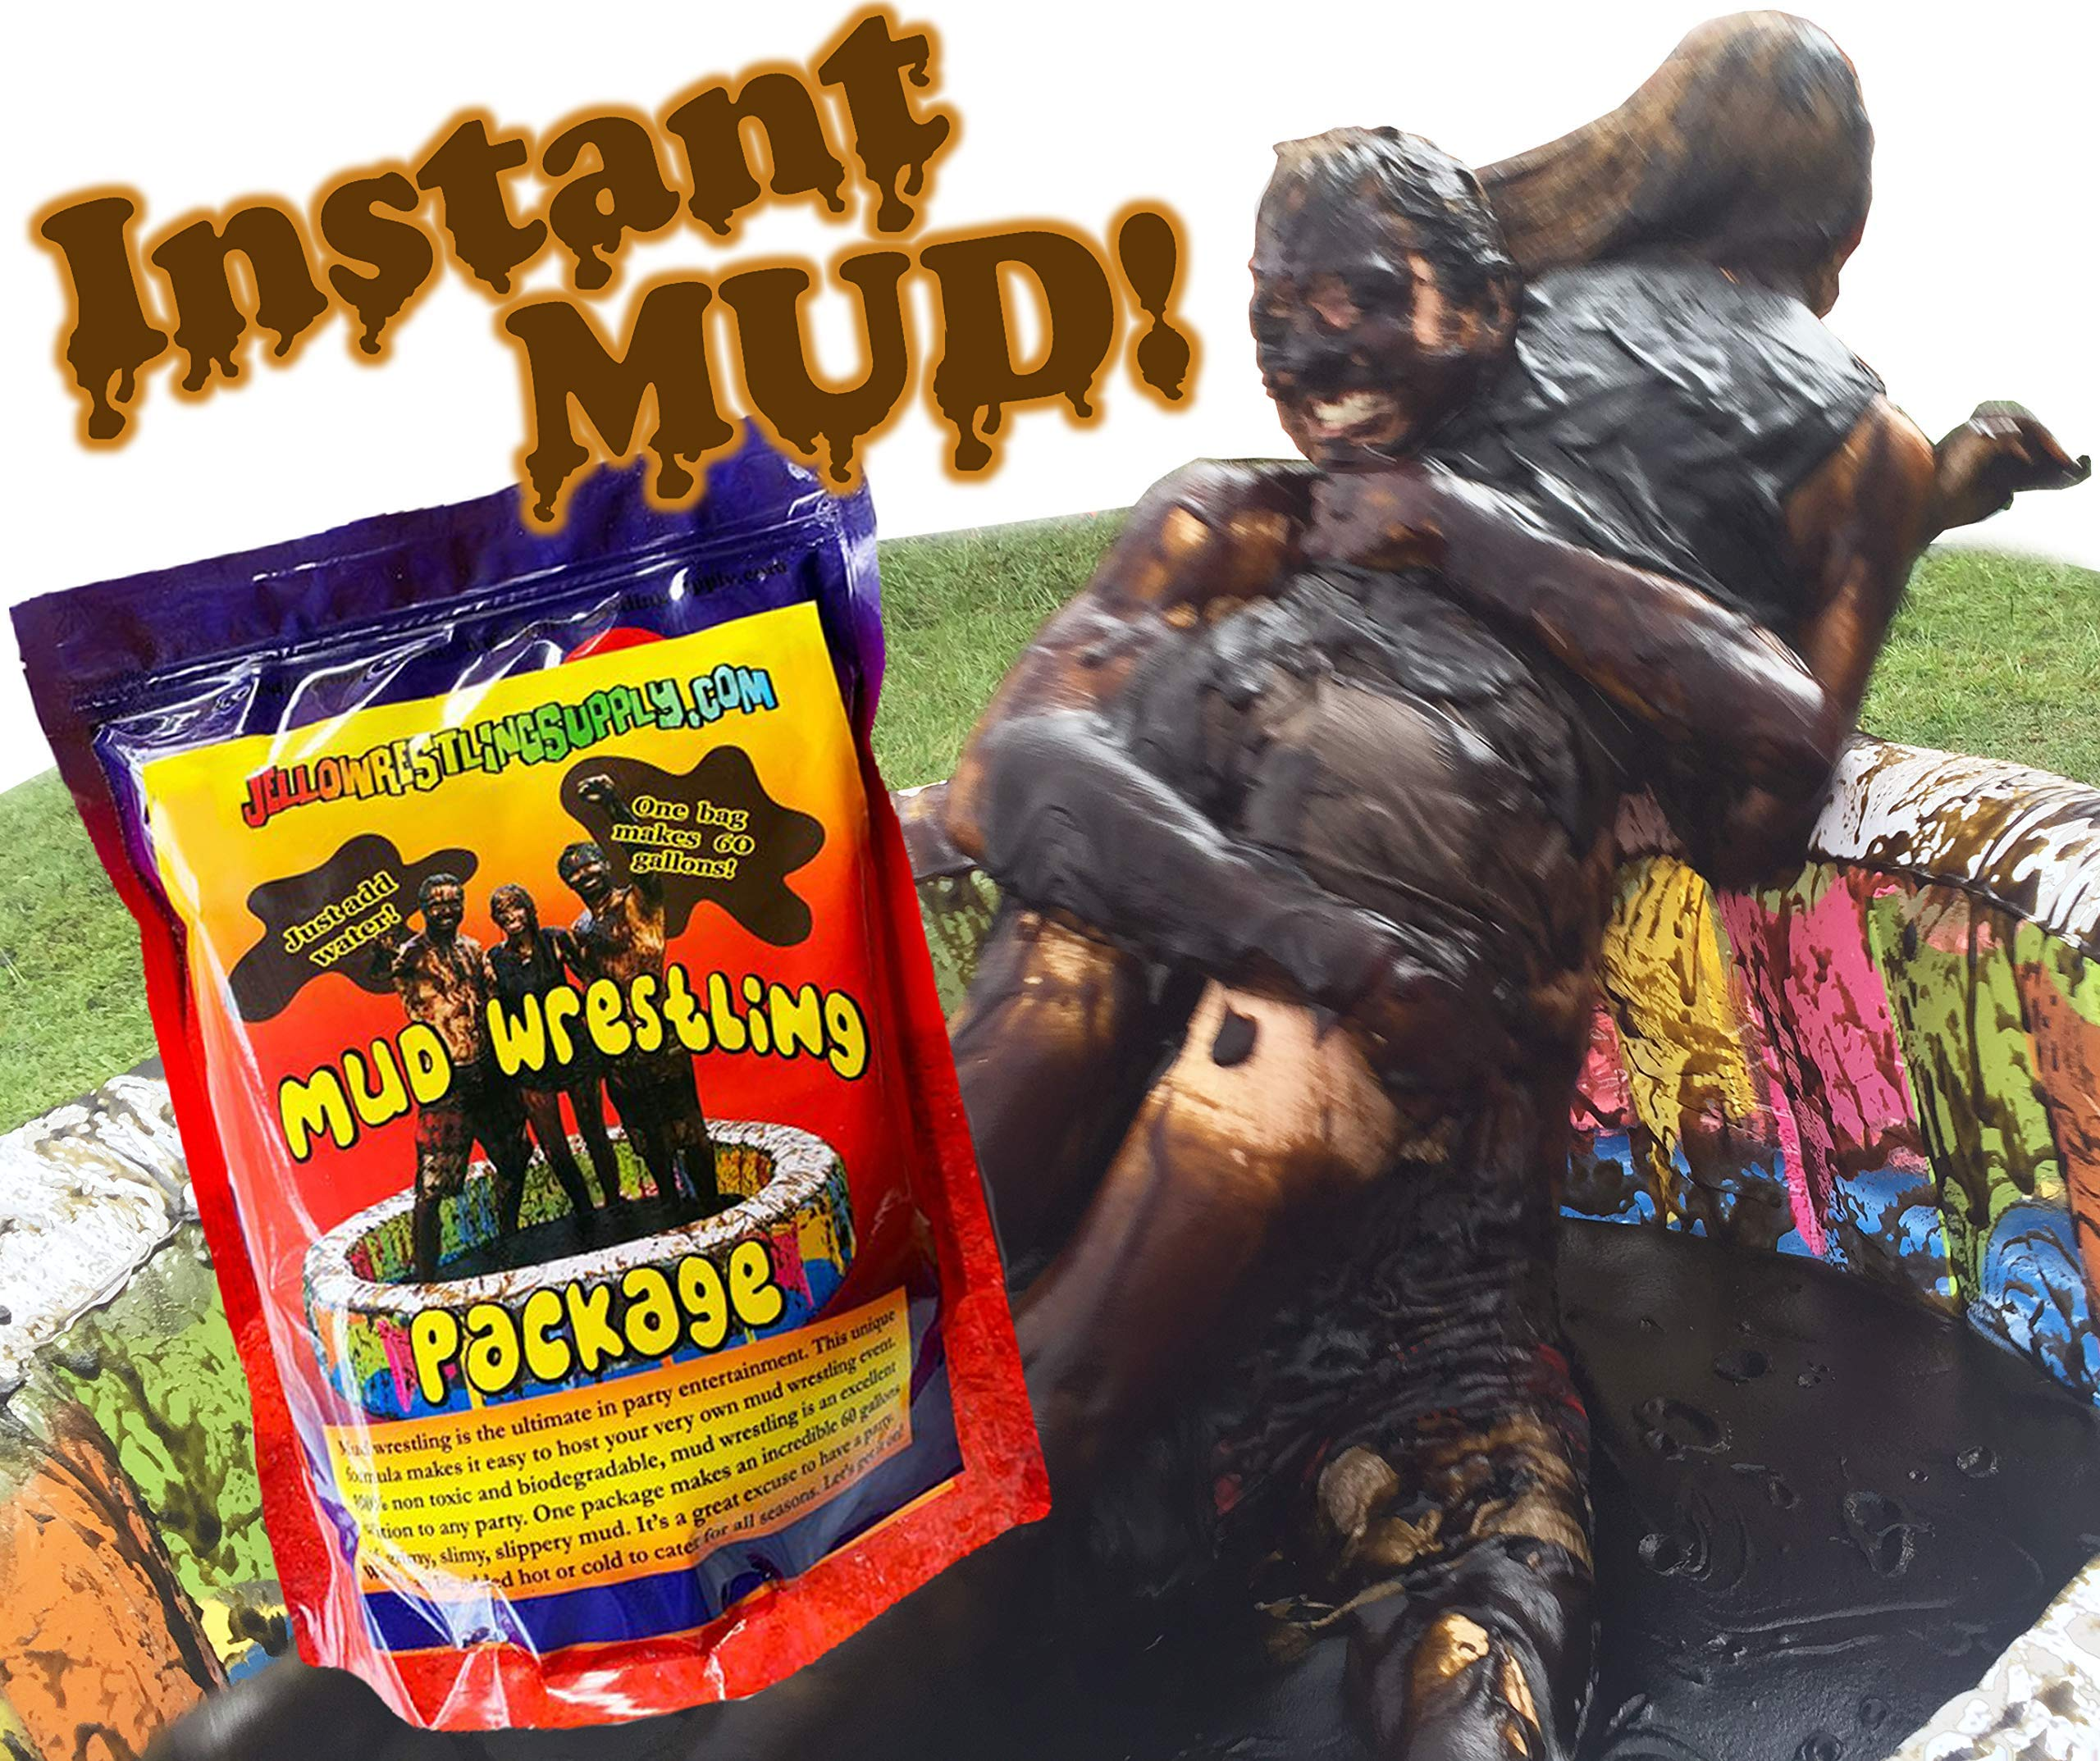 INSTANT MUD for Wrestling, Mud Pies, Balloons & Bombs JUST ADD WATER Bulk Mud powder makes 60 GALLONS of fake mud. Safe, clean mud run obstacle pits, pitch burst, Slime sludge messy kit oil tar by JelloWrestlingSupply.com